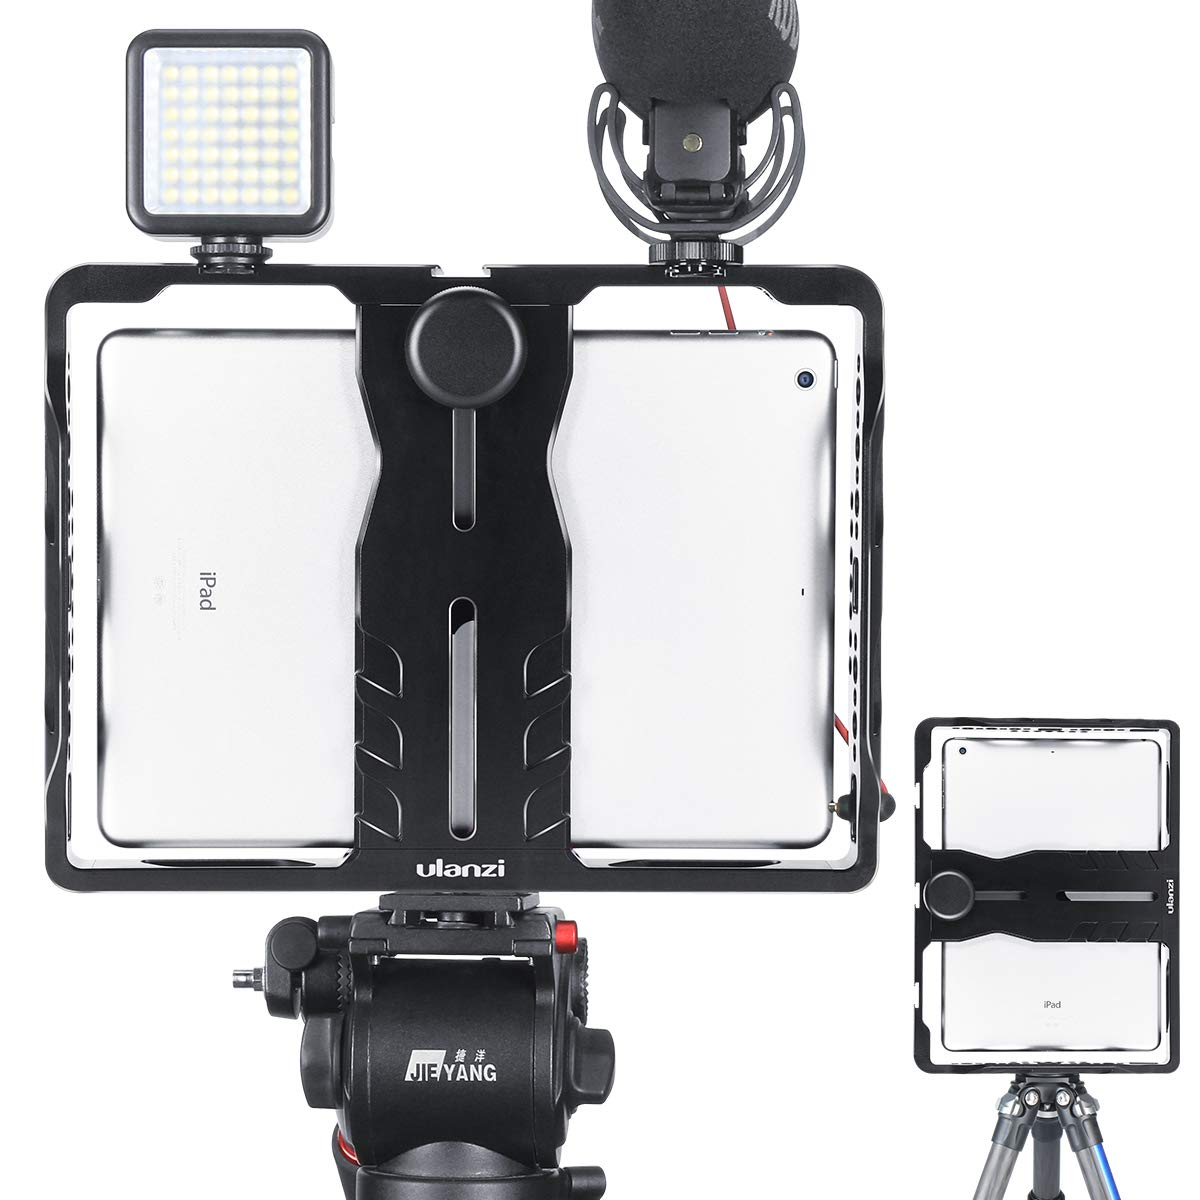 ULANZI U-Pad Metal Video Cage,Tablet Vlog Rig Stabilizer w 1/4 inch Screw Triple Cold Shoe Mount Compatible w iPad/iPad Pro/iPad Air/iPad Mini Tablets Vlogging Used On Microphone Video Light